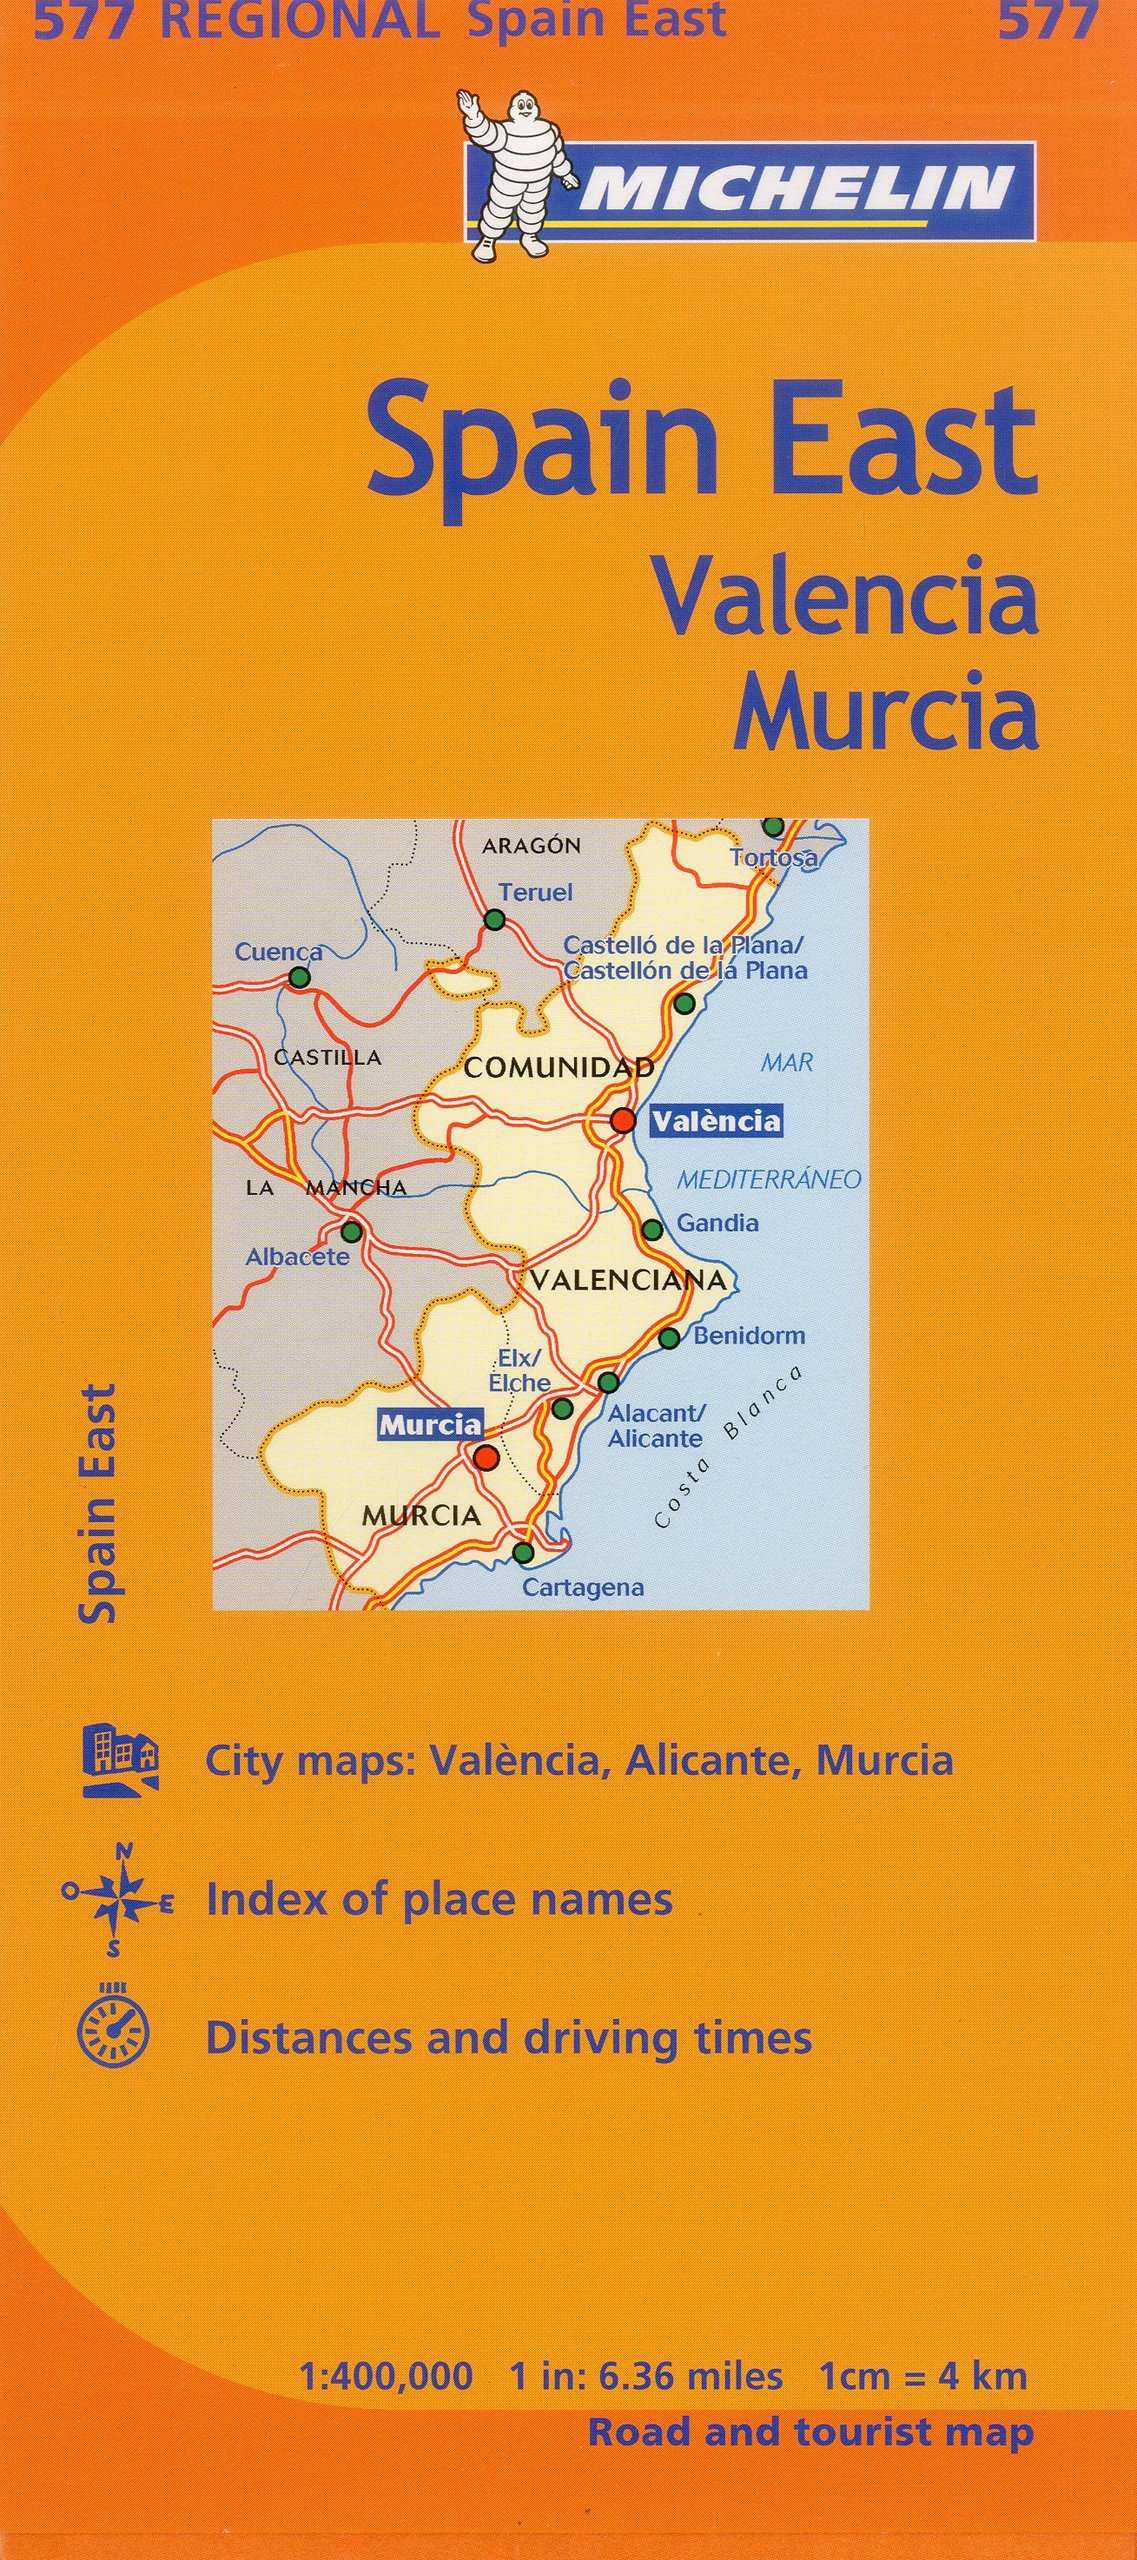 Map Of Spain Murcia.Michelin Spain East Valencia Murcia Map 577 Maps Regional